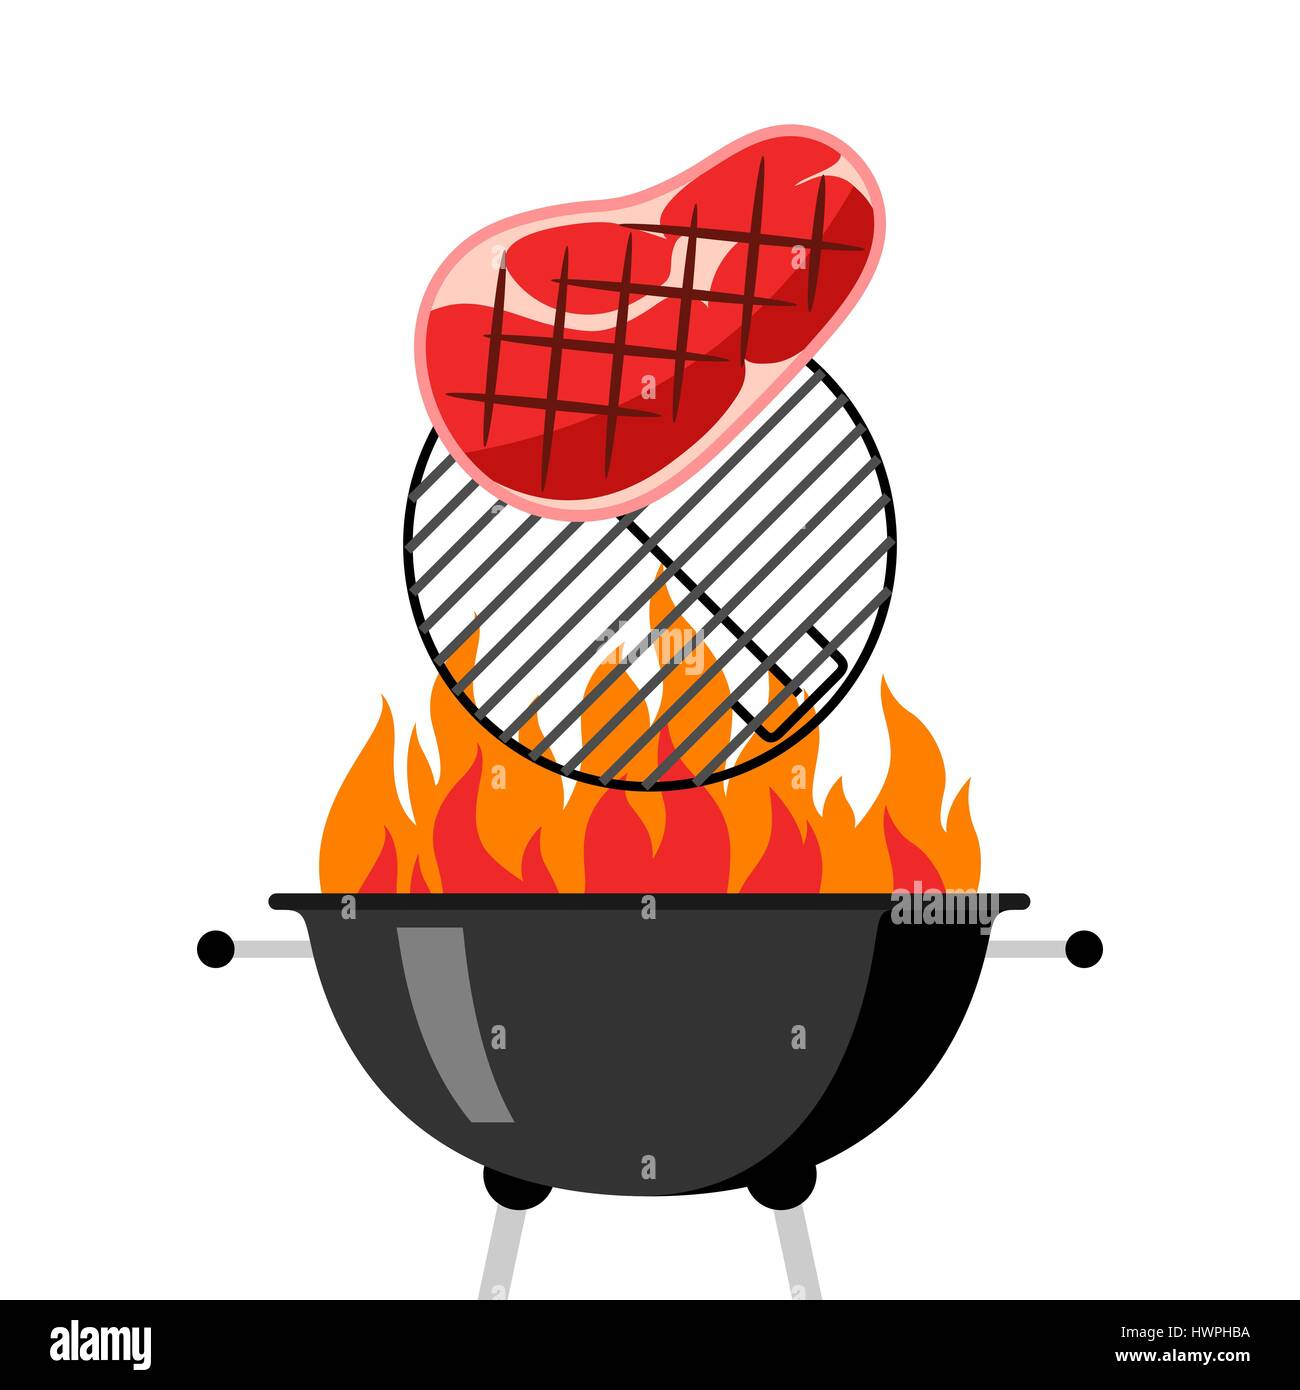 Bbq grill with grate, fire and fried steak - Stock Vector